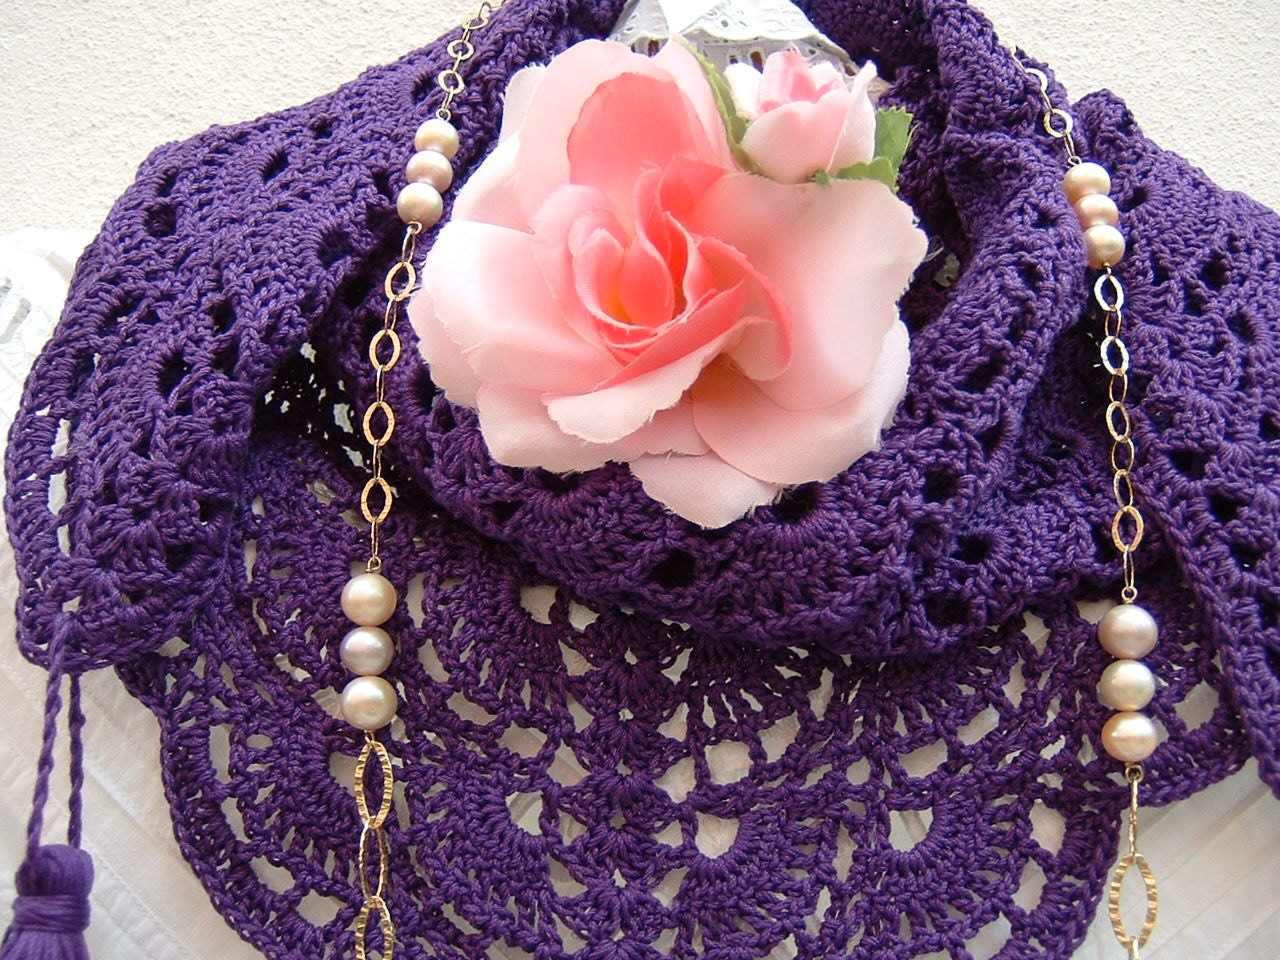 ethno chic style lace scarf handmade in purple cotton crochet with tassels women 39 s fashion. Black Bedroom Furniture Sets. Home Design Ideas